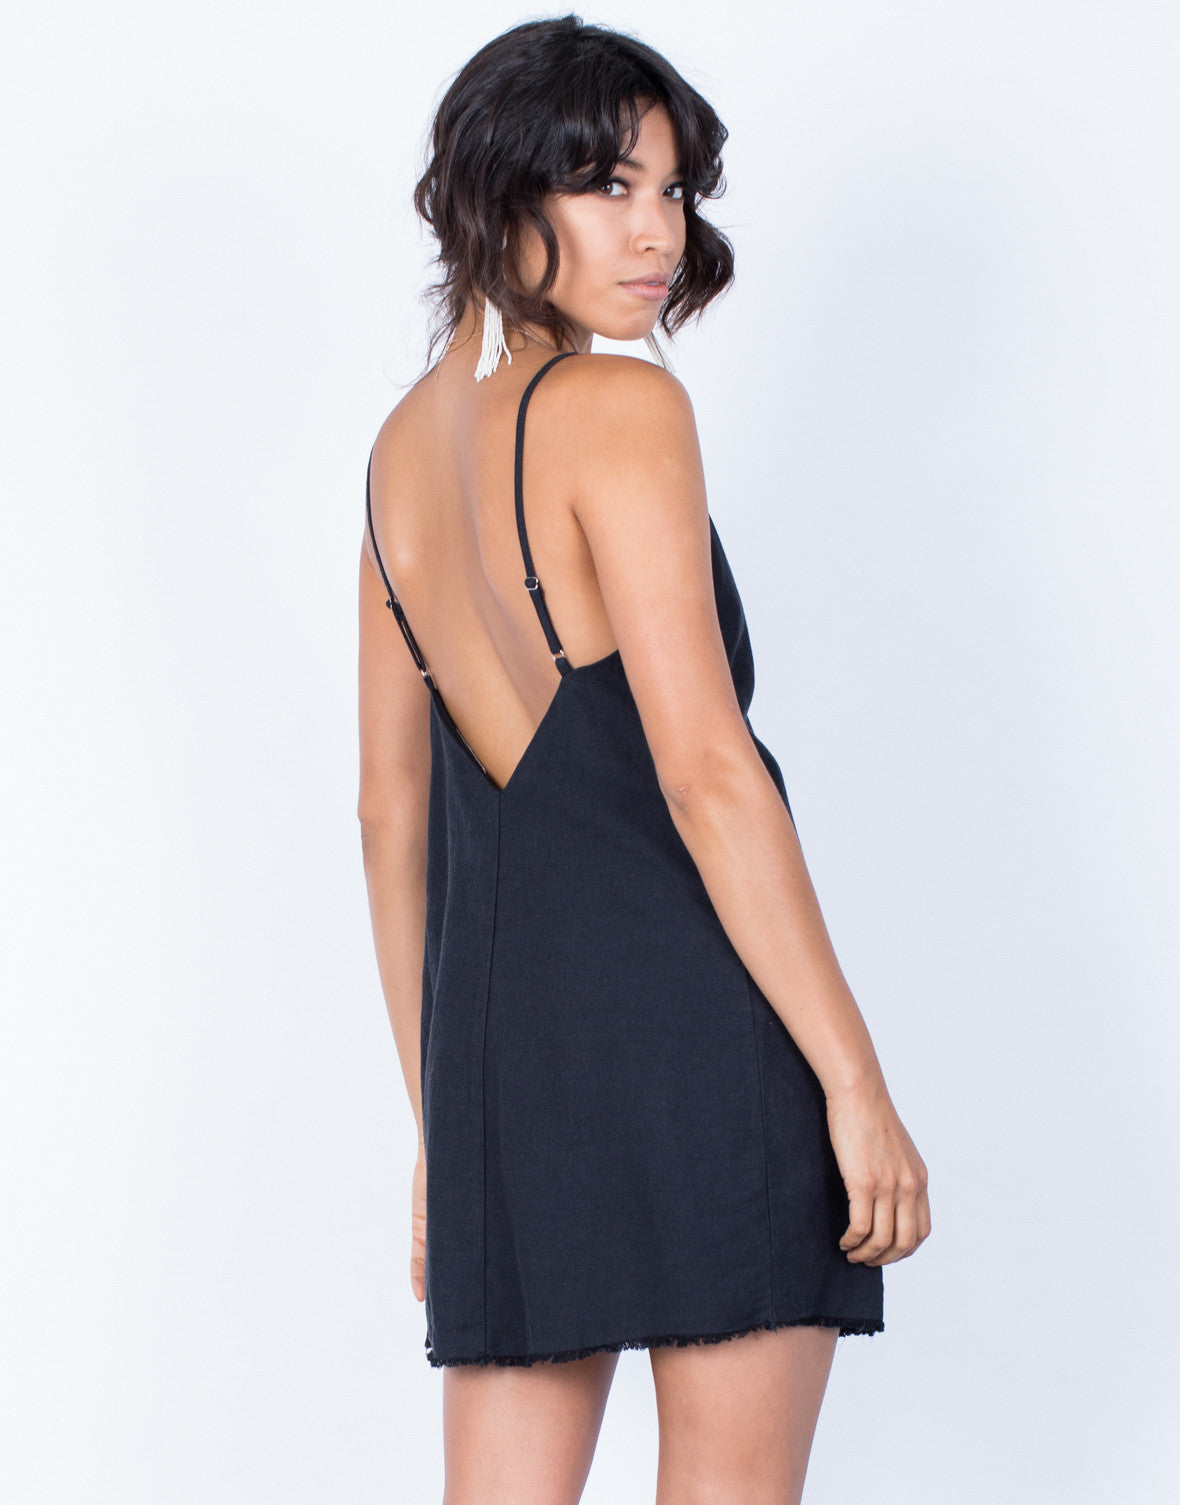 Back View of The Minimal Slip Dress